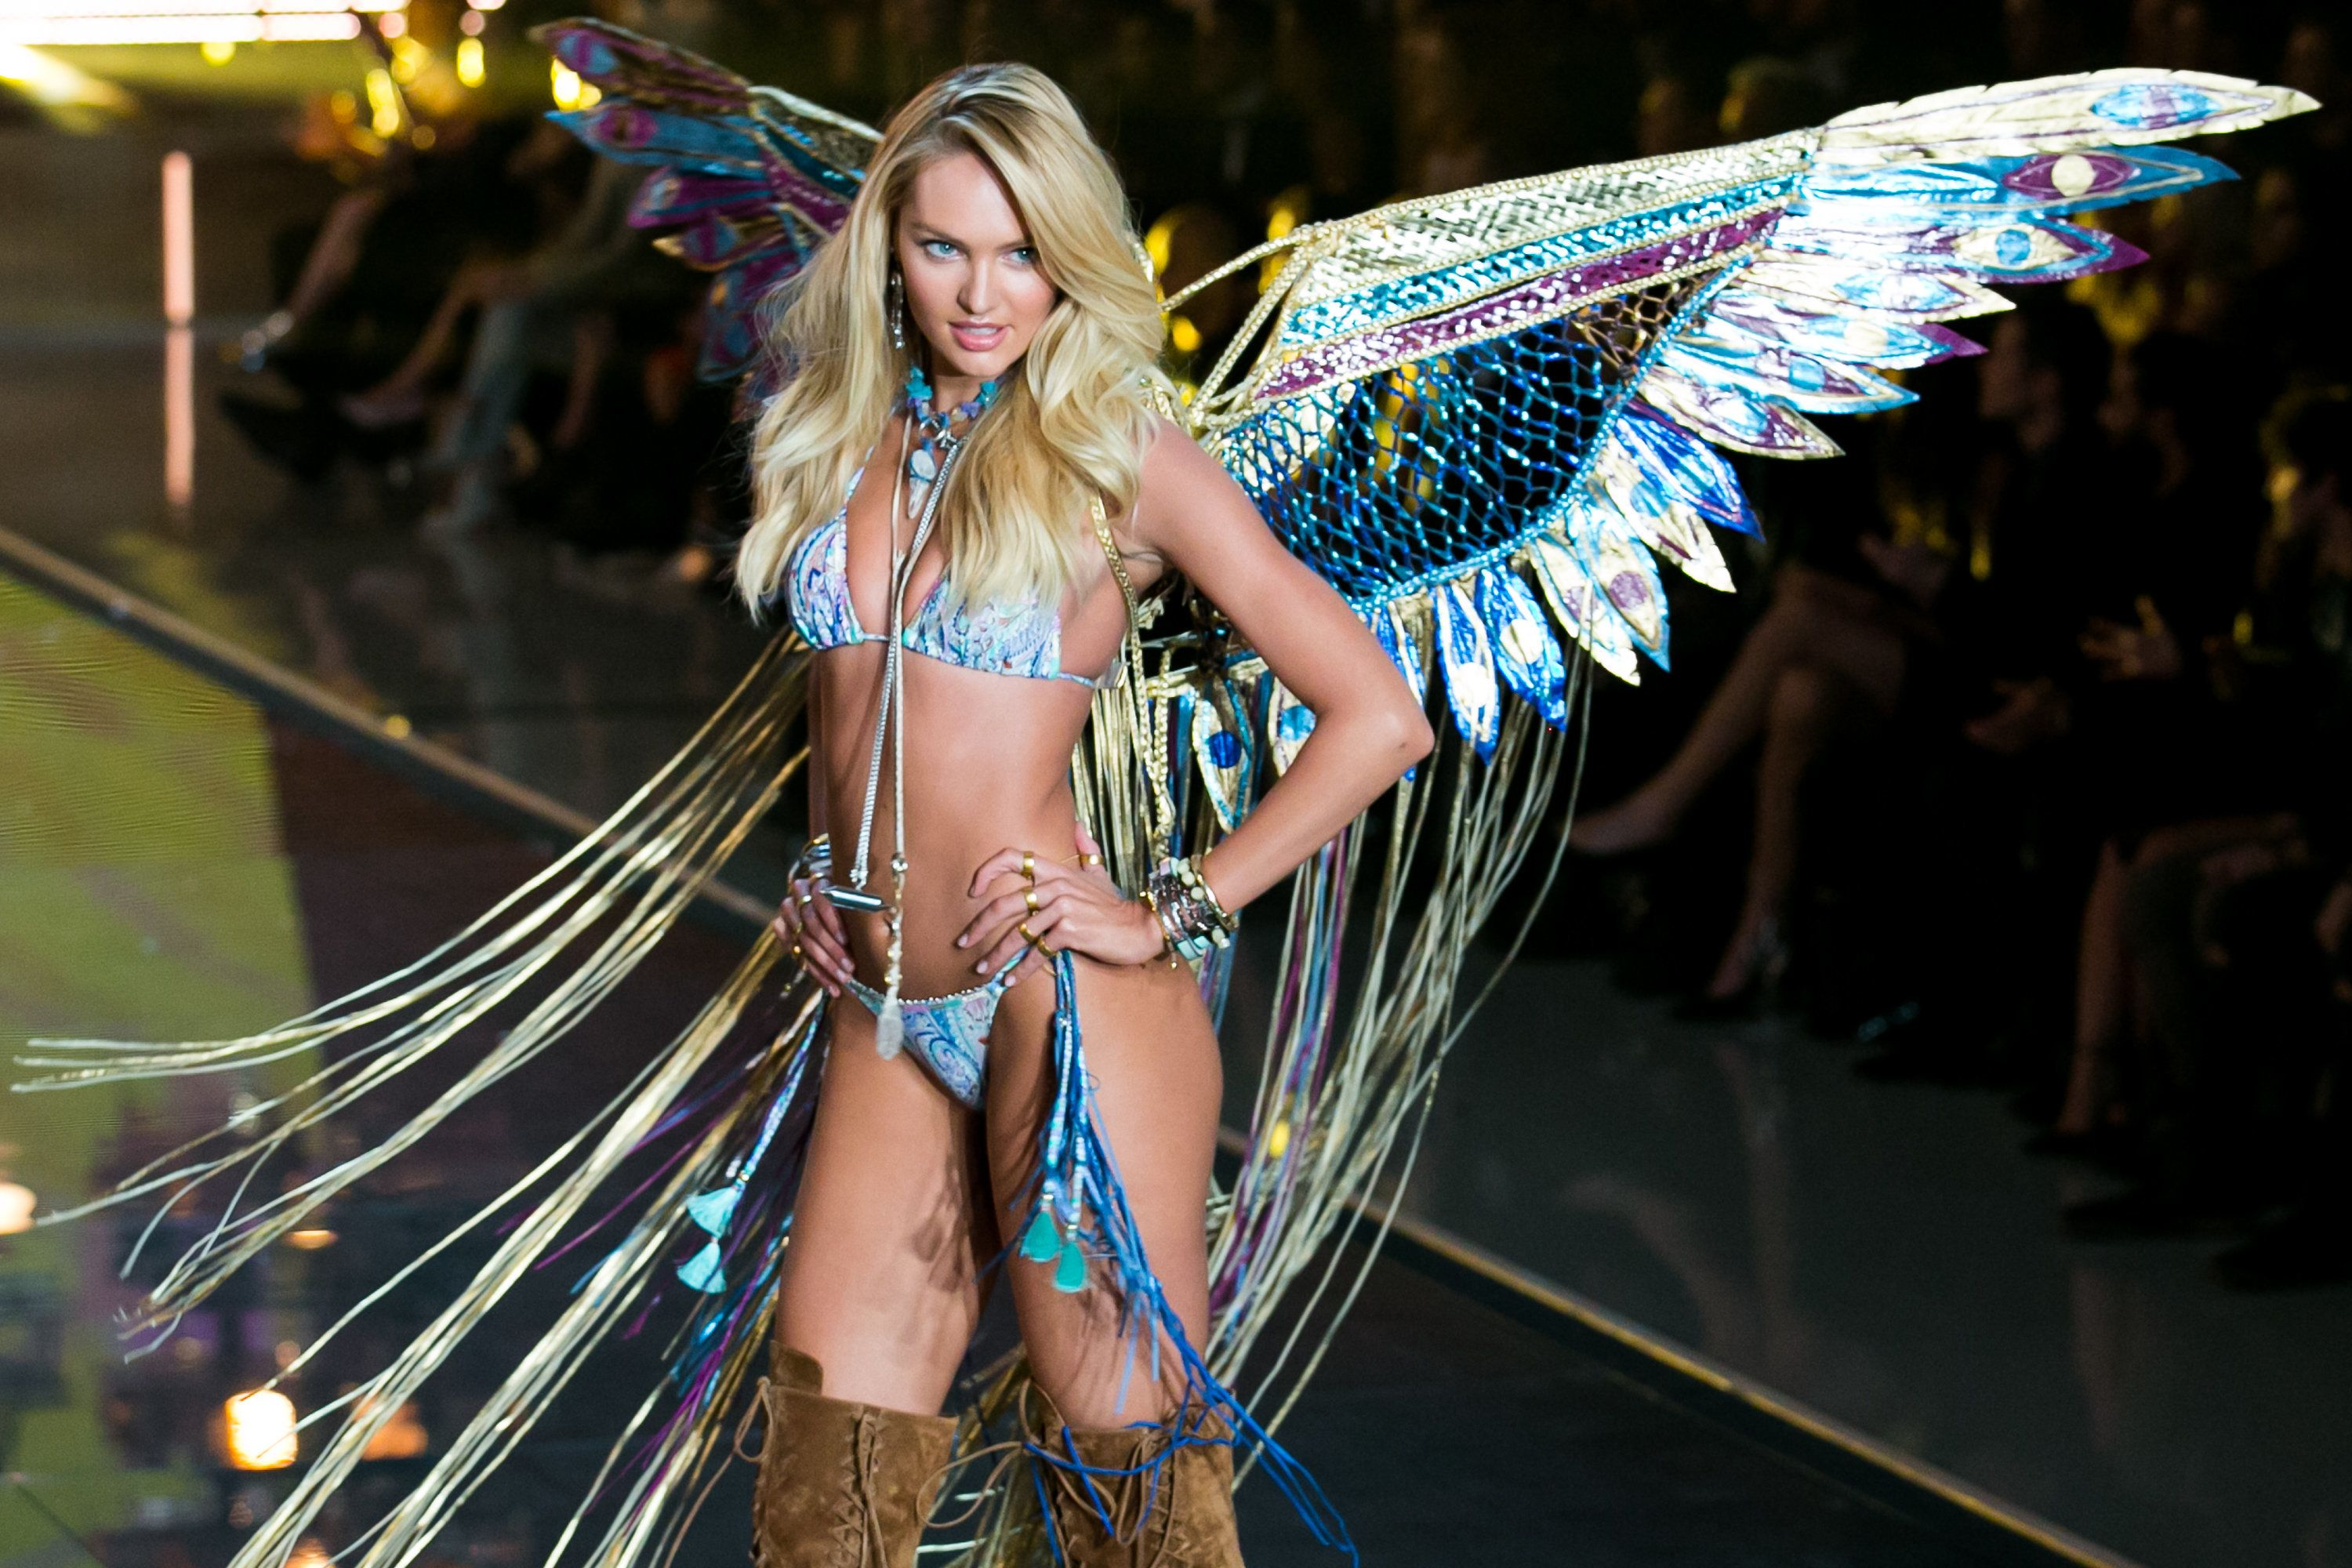 CNBC EVENTS -- 2015 Victoria's Secret Fashion Show -- Pictured: Model   Candice Swanepoel walks the runway during the 2015 Victoria's Secret Fashion Show in New York City on November 10, 2015.  -- (Photo by: Adam Jeffery/CNBC)